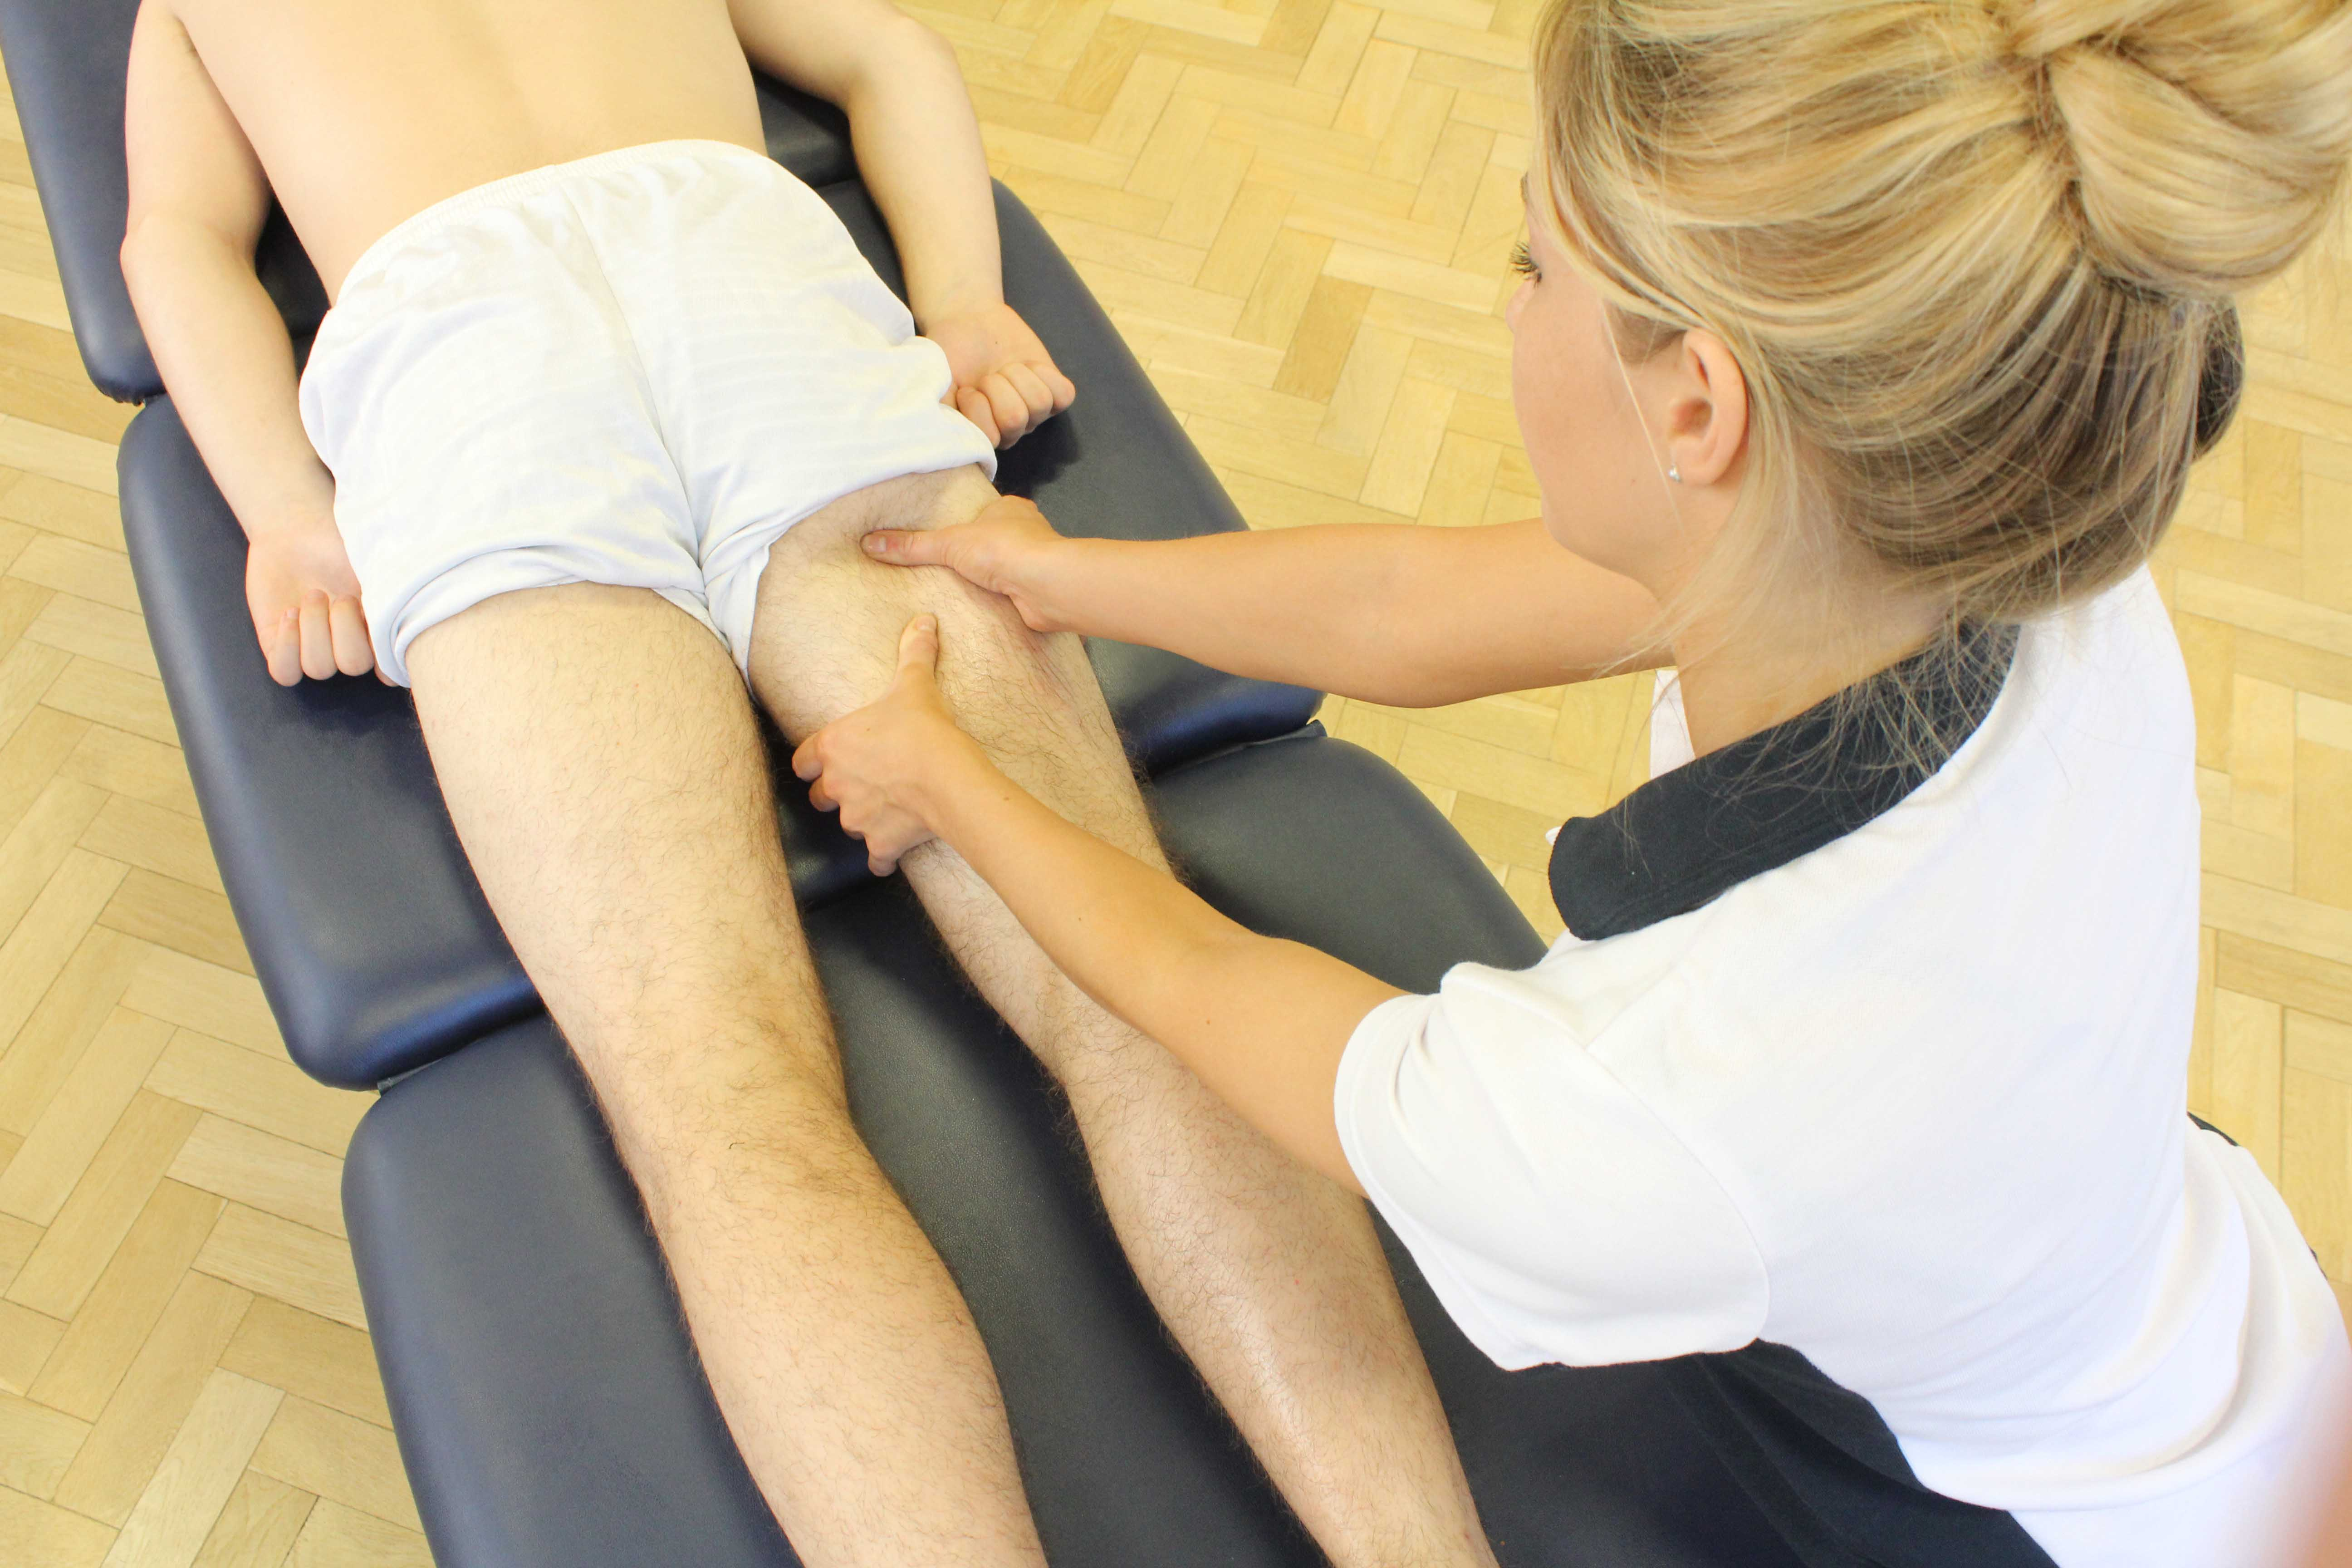 Trigger point massage of the hamstring muscles by experienced MSK therapist